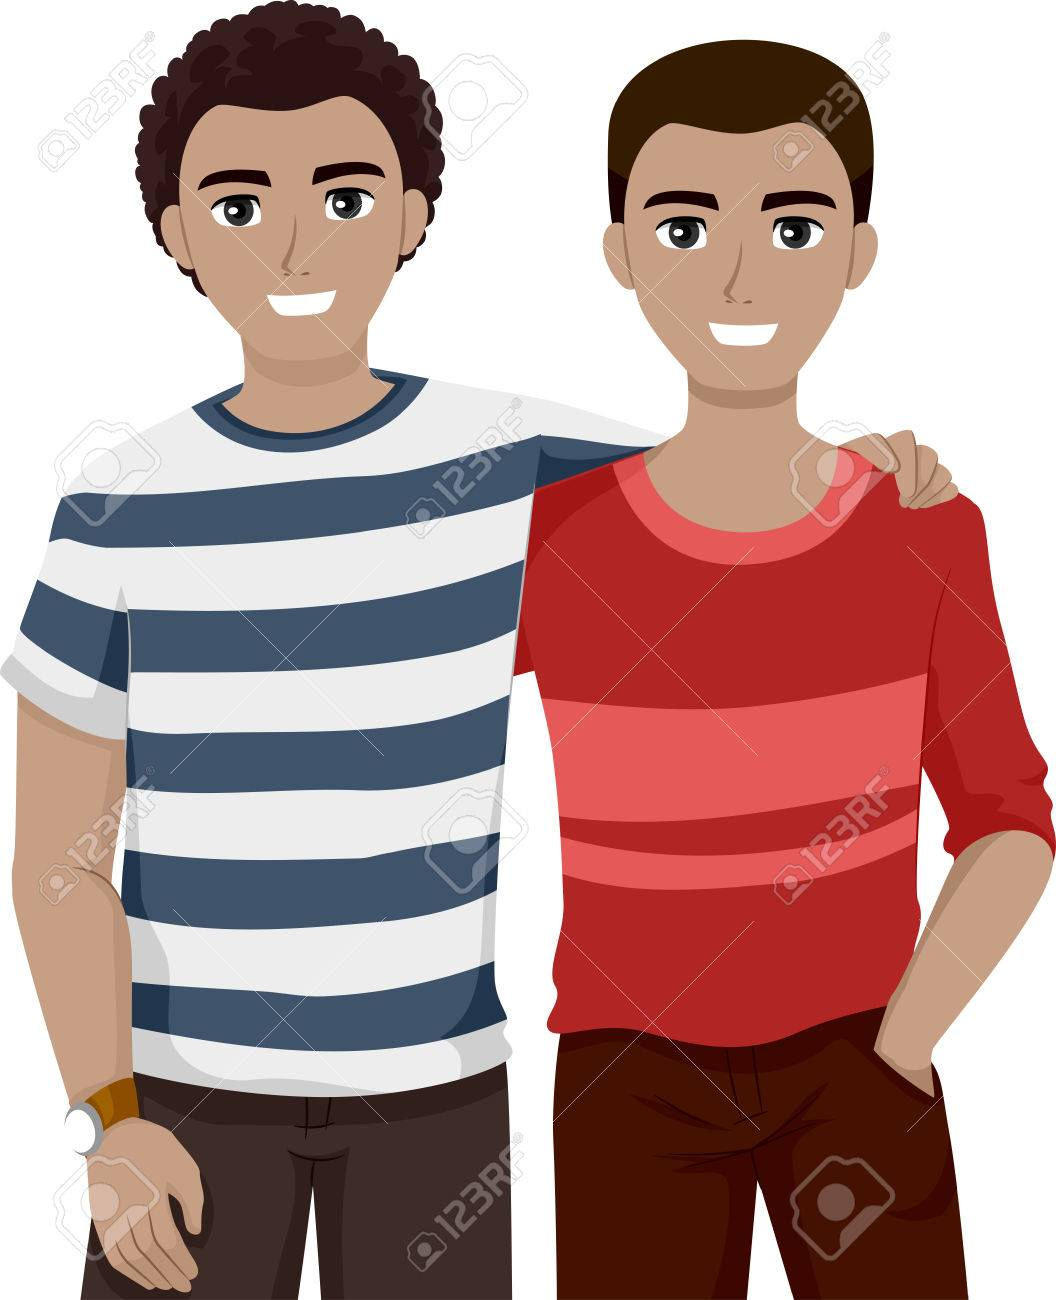 Illustration Of Teenage Best Friends Chilling ther Stock Photo ...